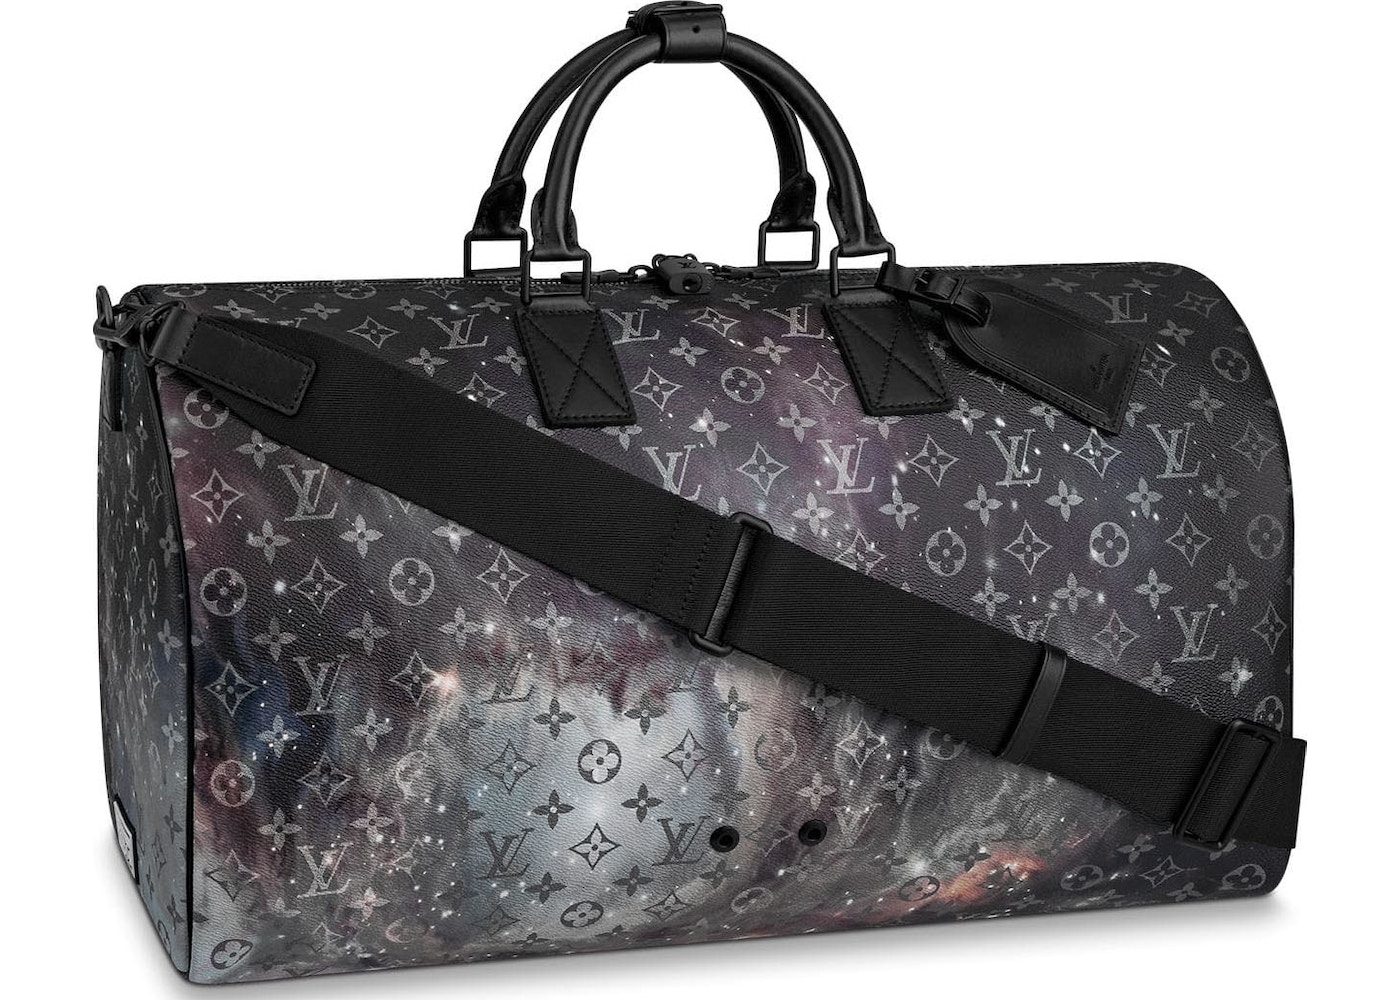 af447e39cf Louis Vuitton Keepall Bandouliere Monogram Galaxy 50 Black ...